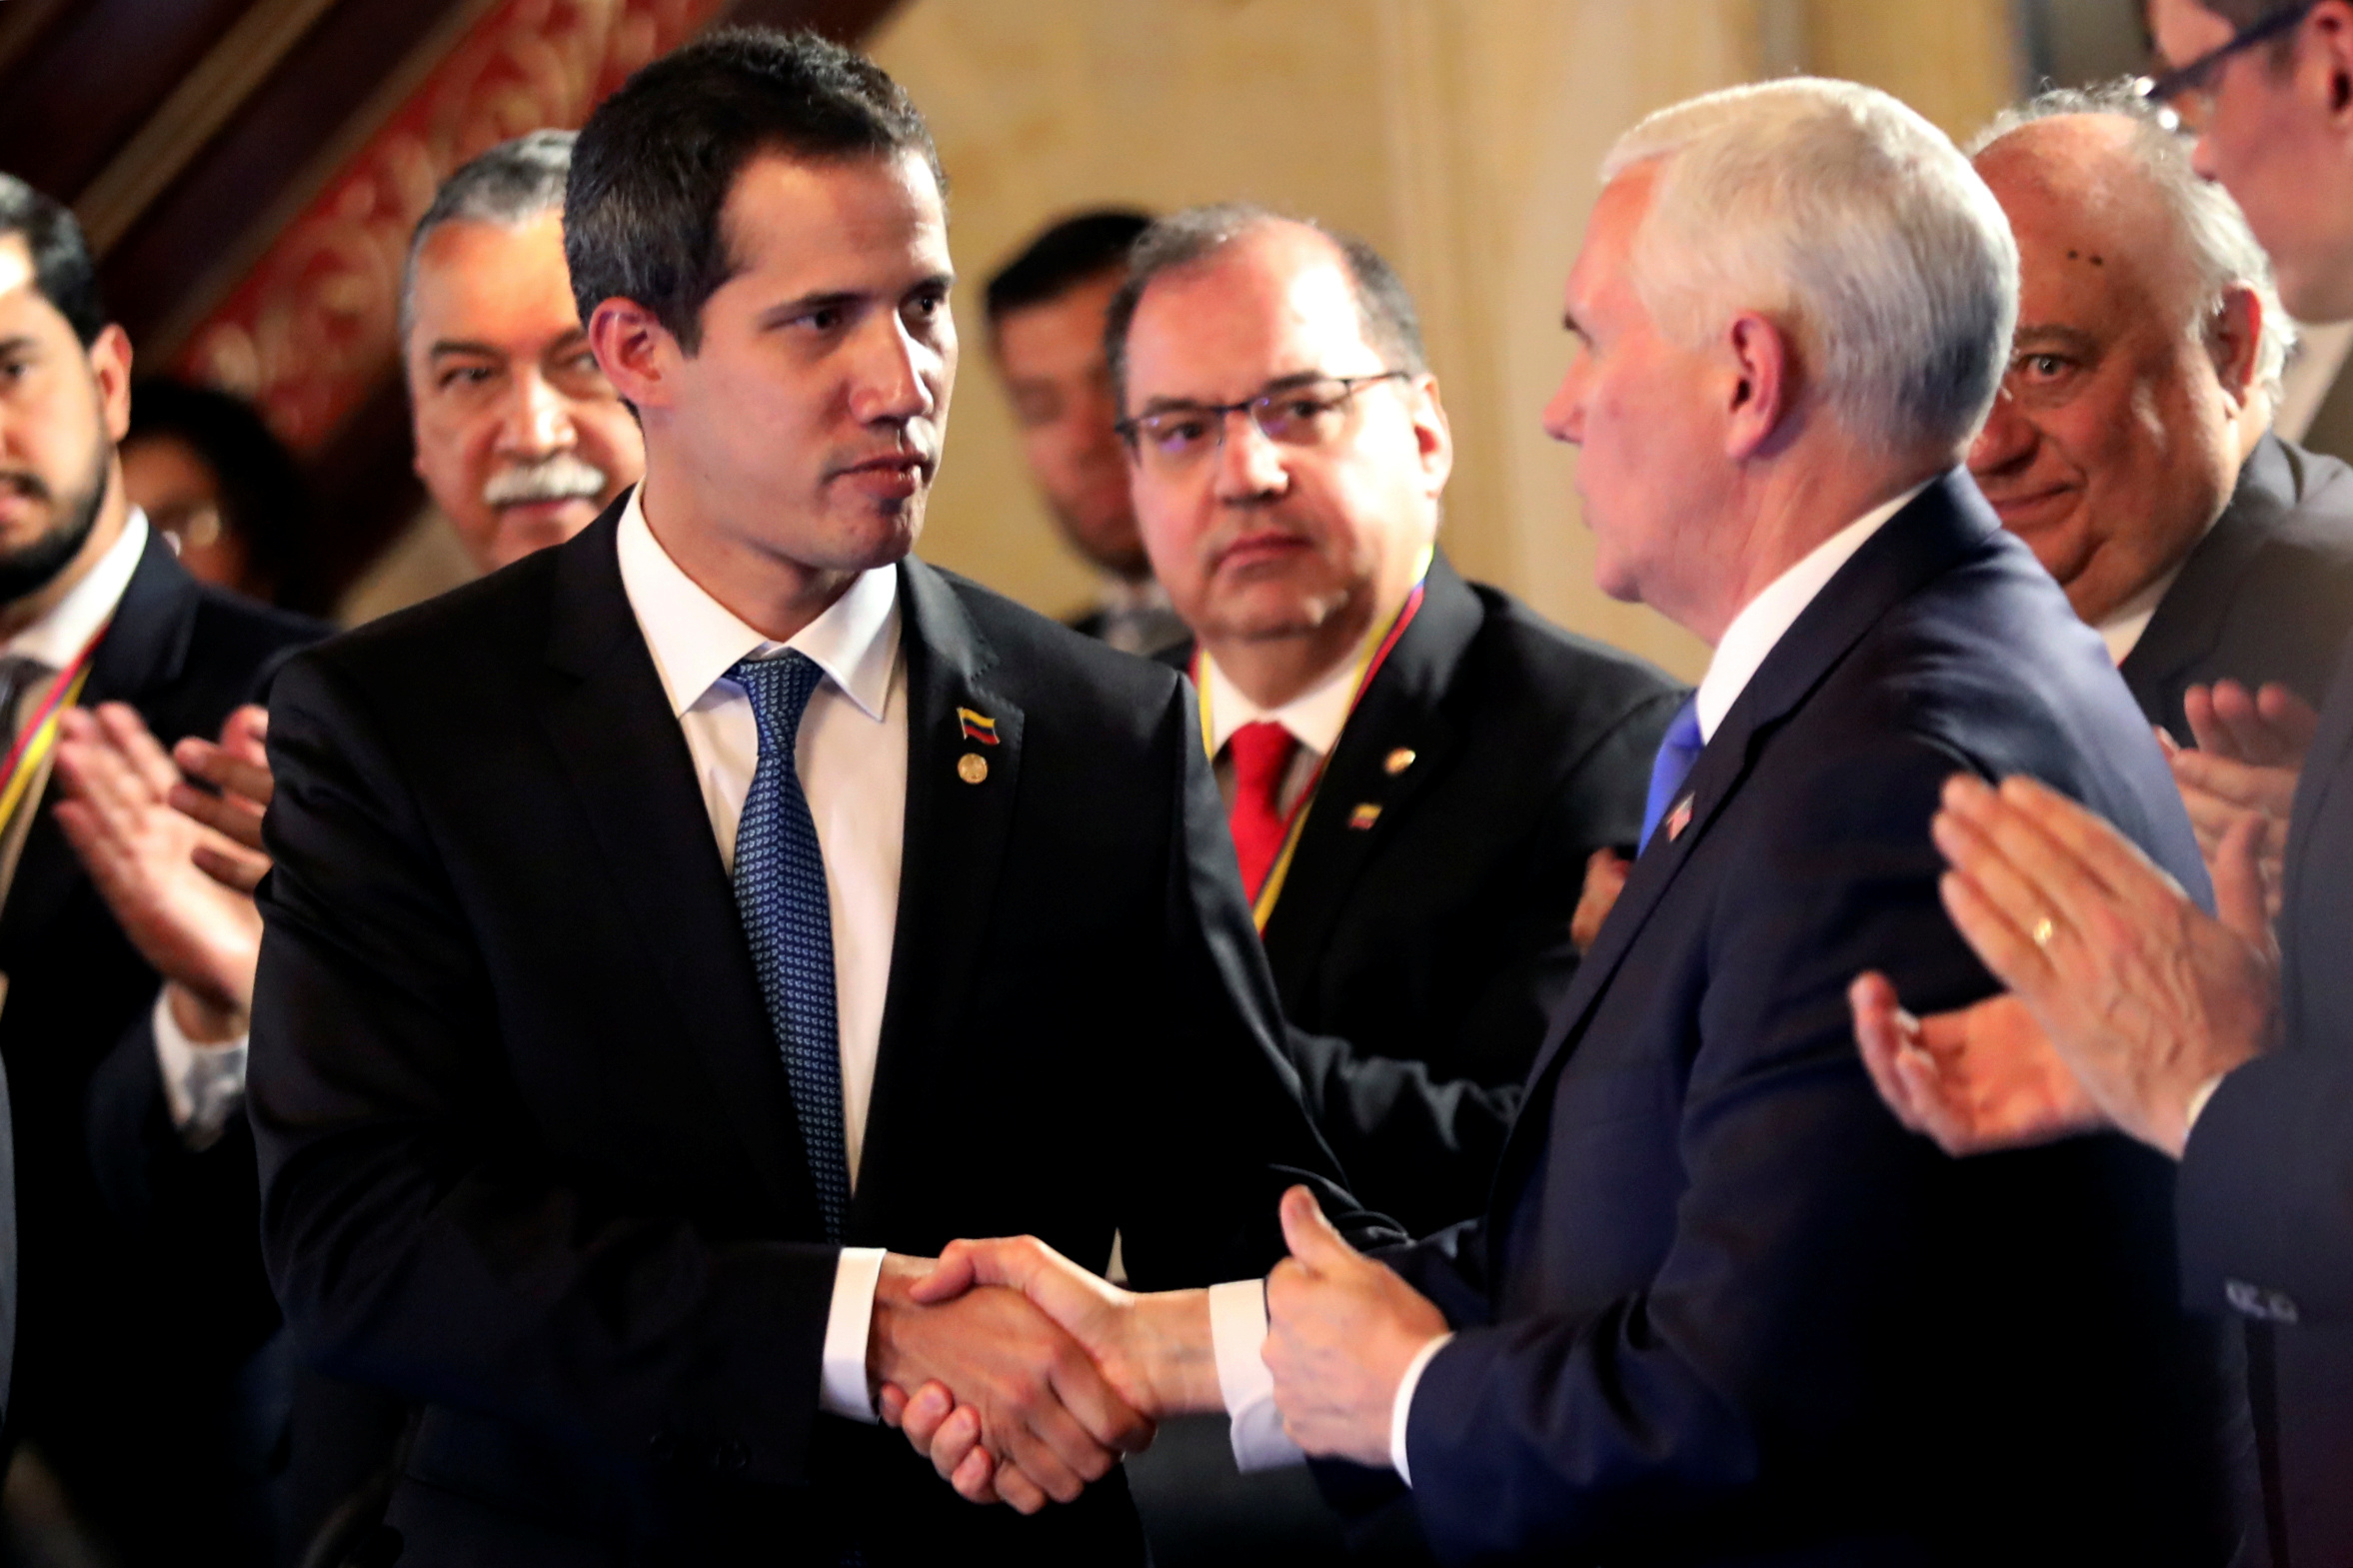 U.S. Vice President Mike Pence and Venezuelan opposition leader Juan Guaido, who many nations have recognized as the country's rightful interim ruler, shake hands during a meeting of the Lima Group in Bogota, Colombia, February 25, 2019. REUTERS/Luisa Gonzalez